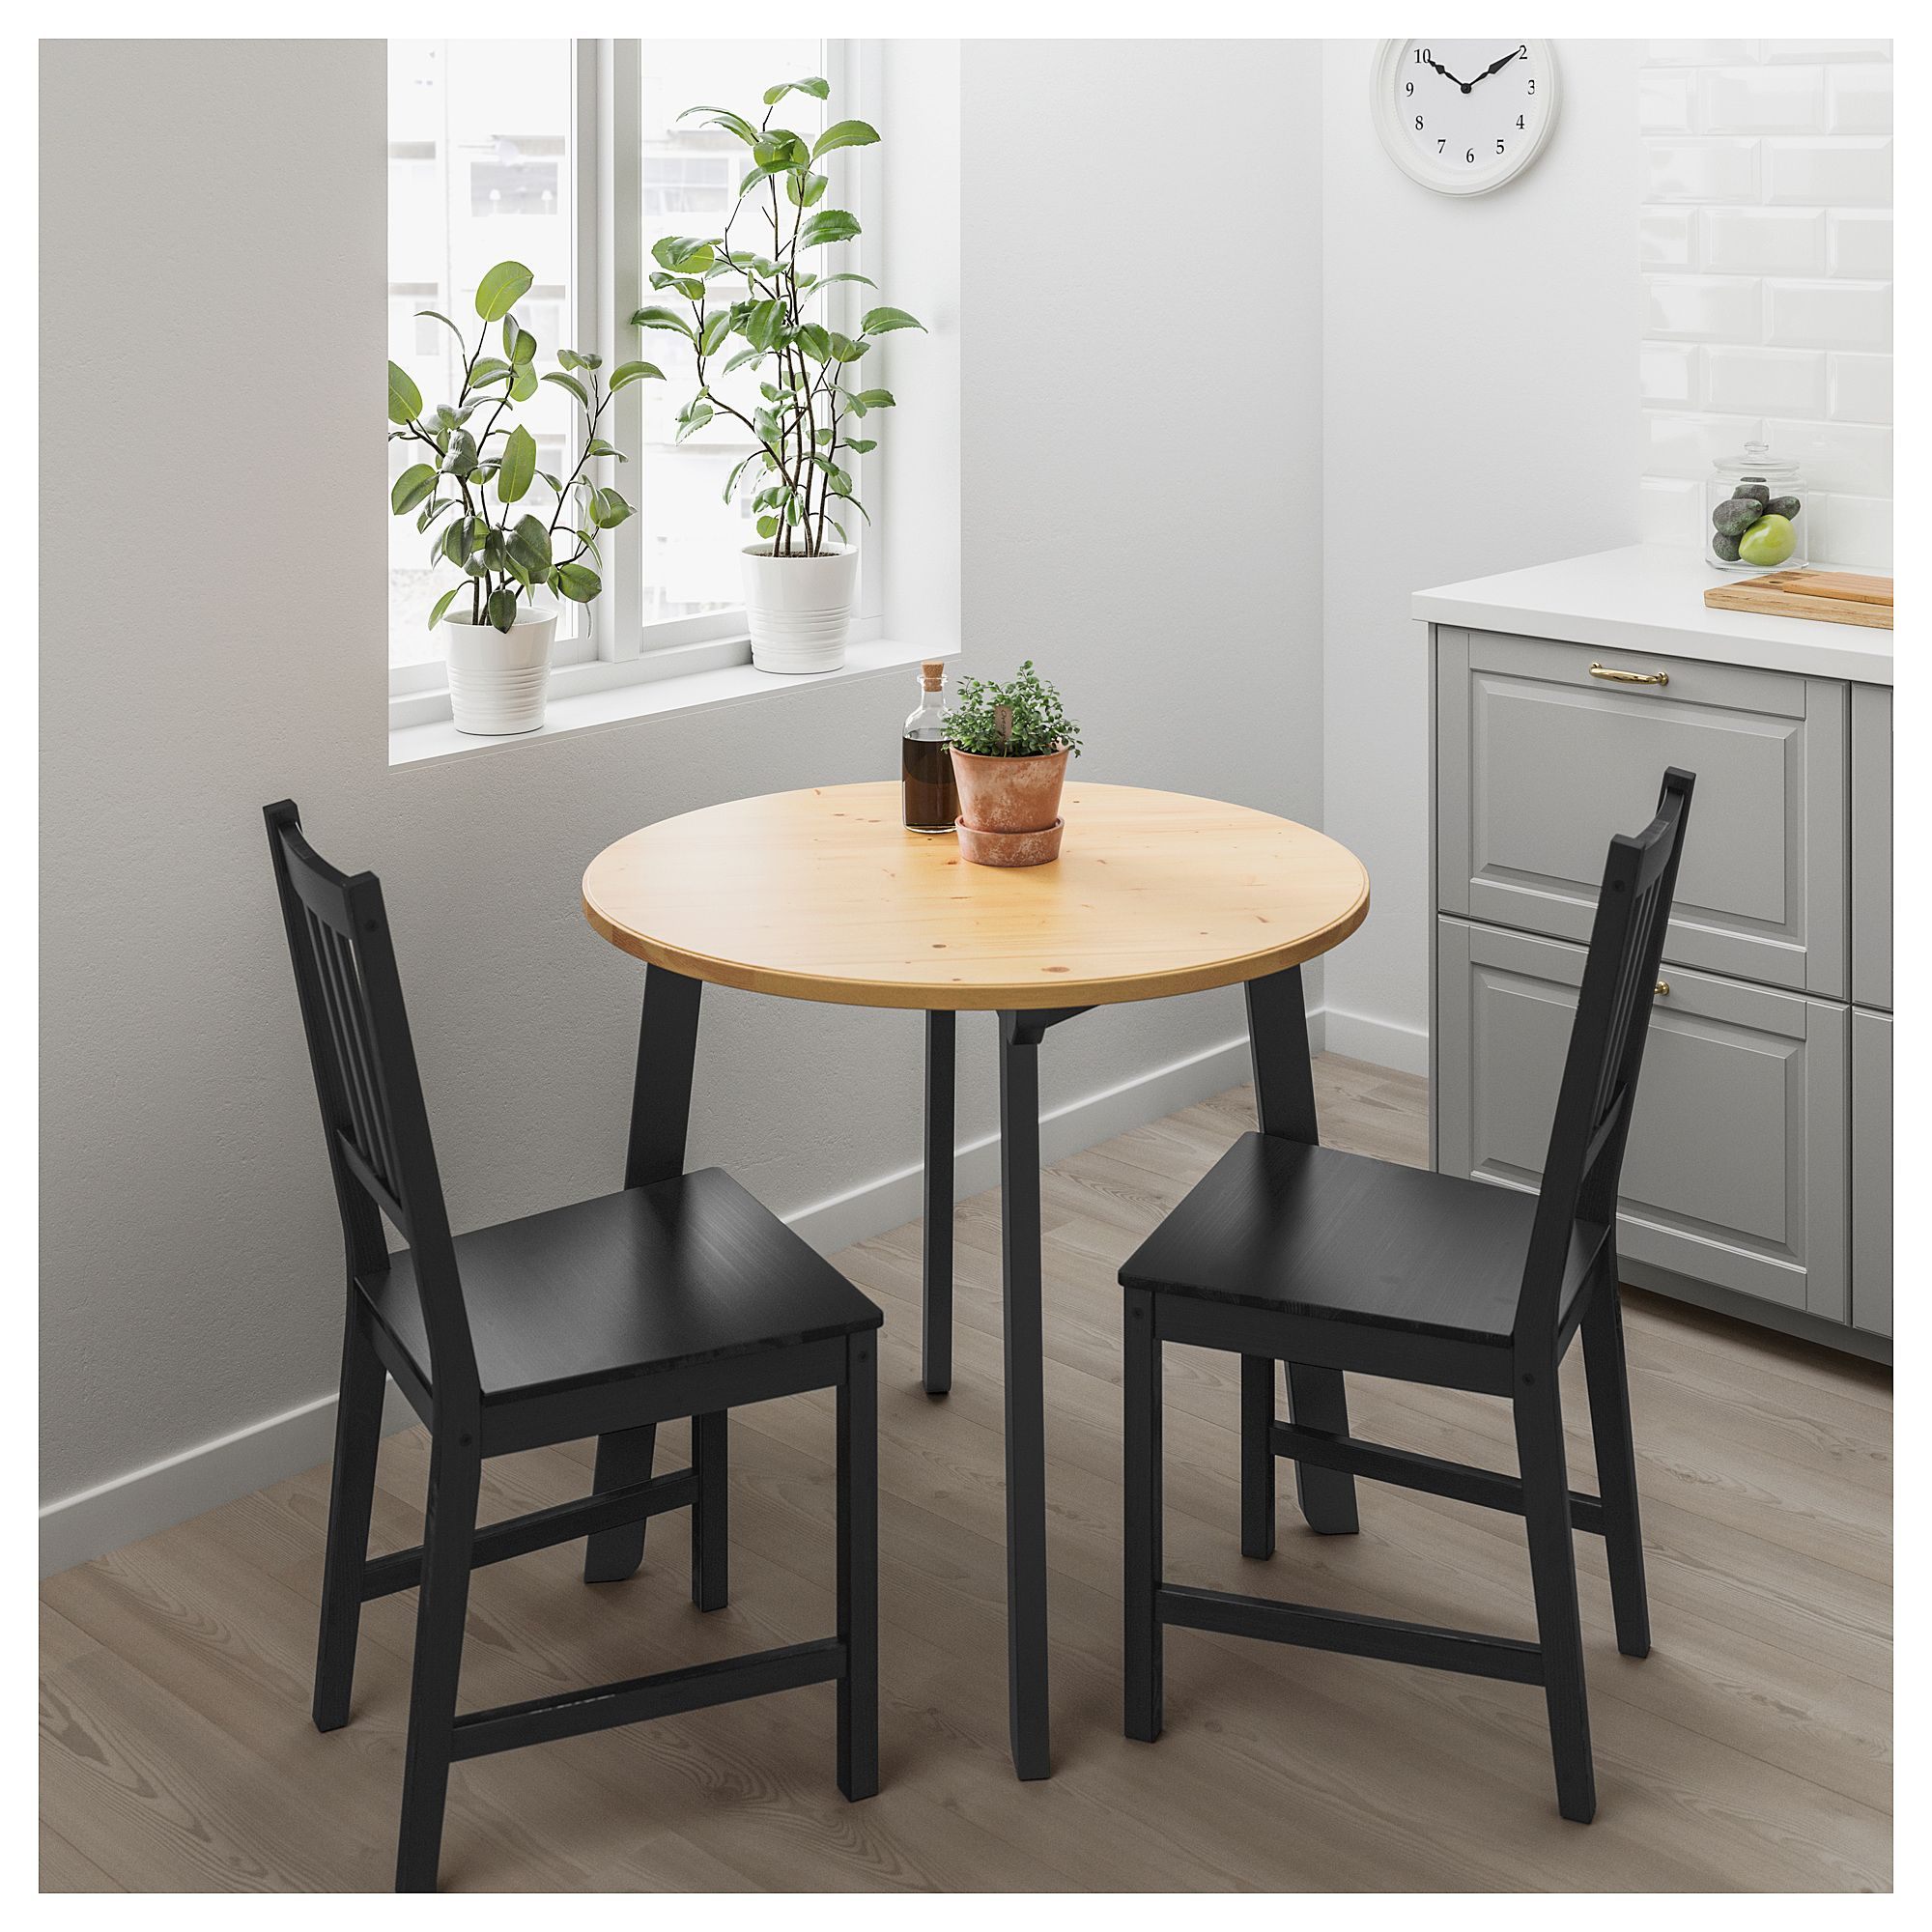 Gamlared Light Antique Stain Black Stained Table Ikea Small Kitchen Tables Small Dining Table Ikea